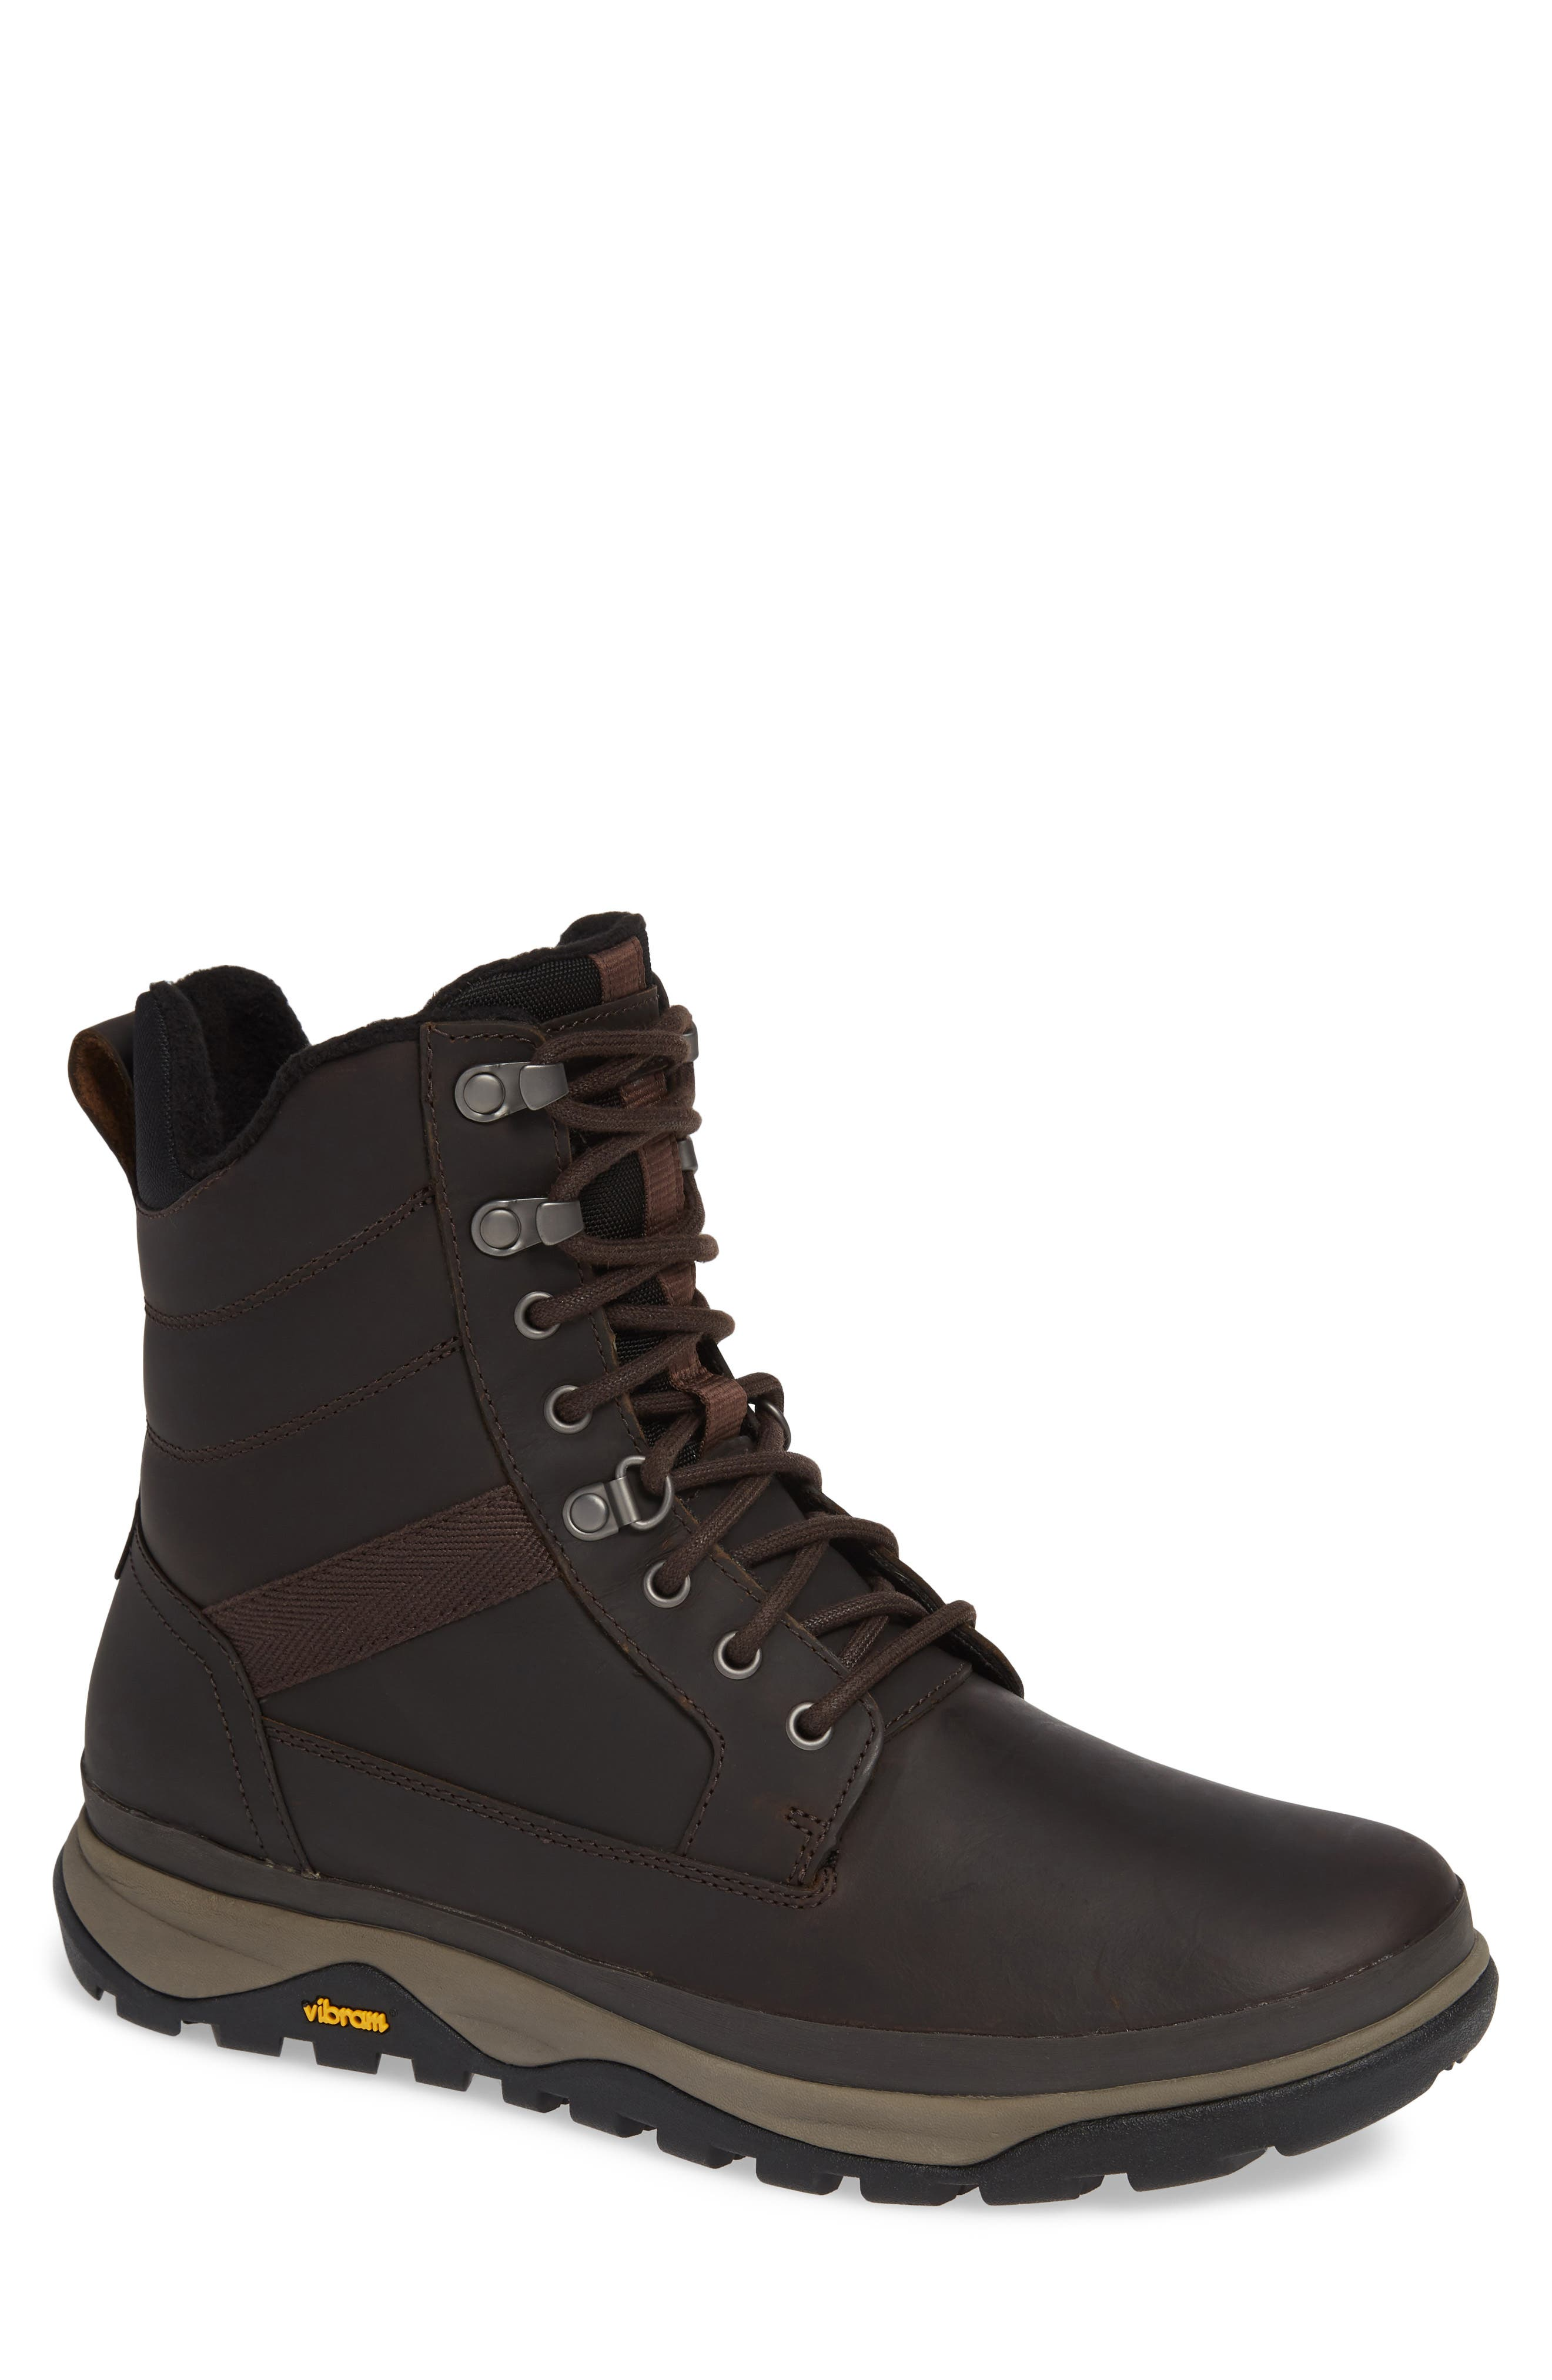 "Image of Merrell Tremblant 8"" Polar Waterproof Boot"